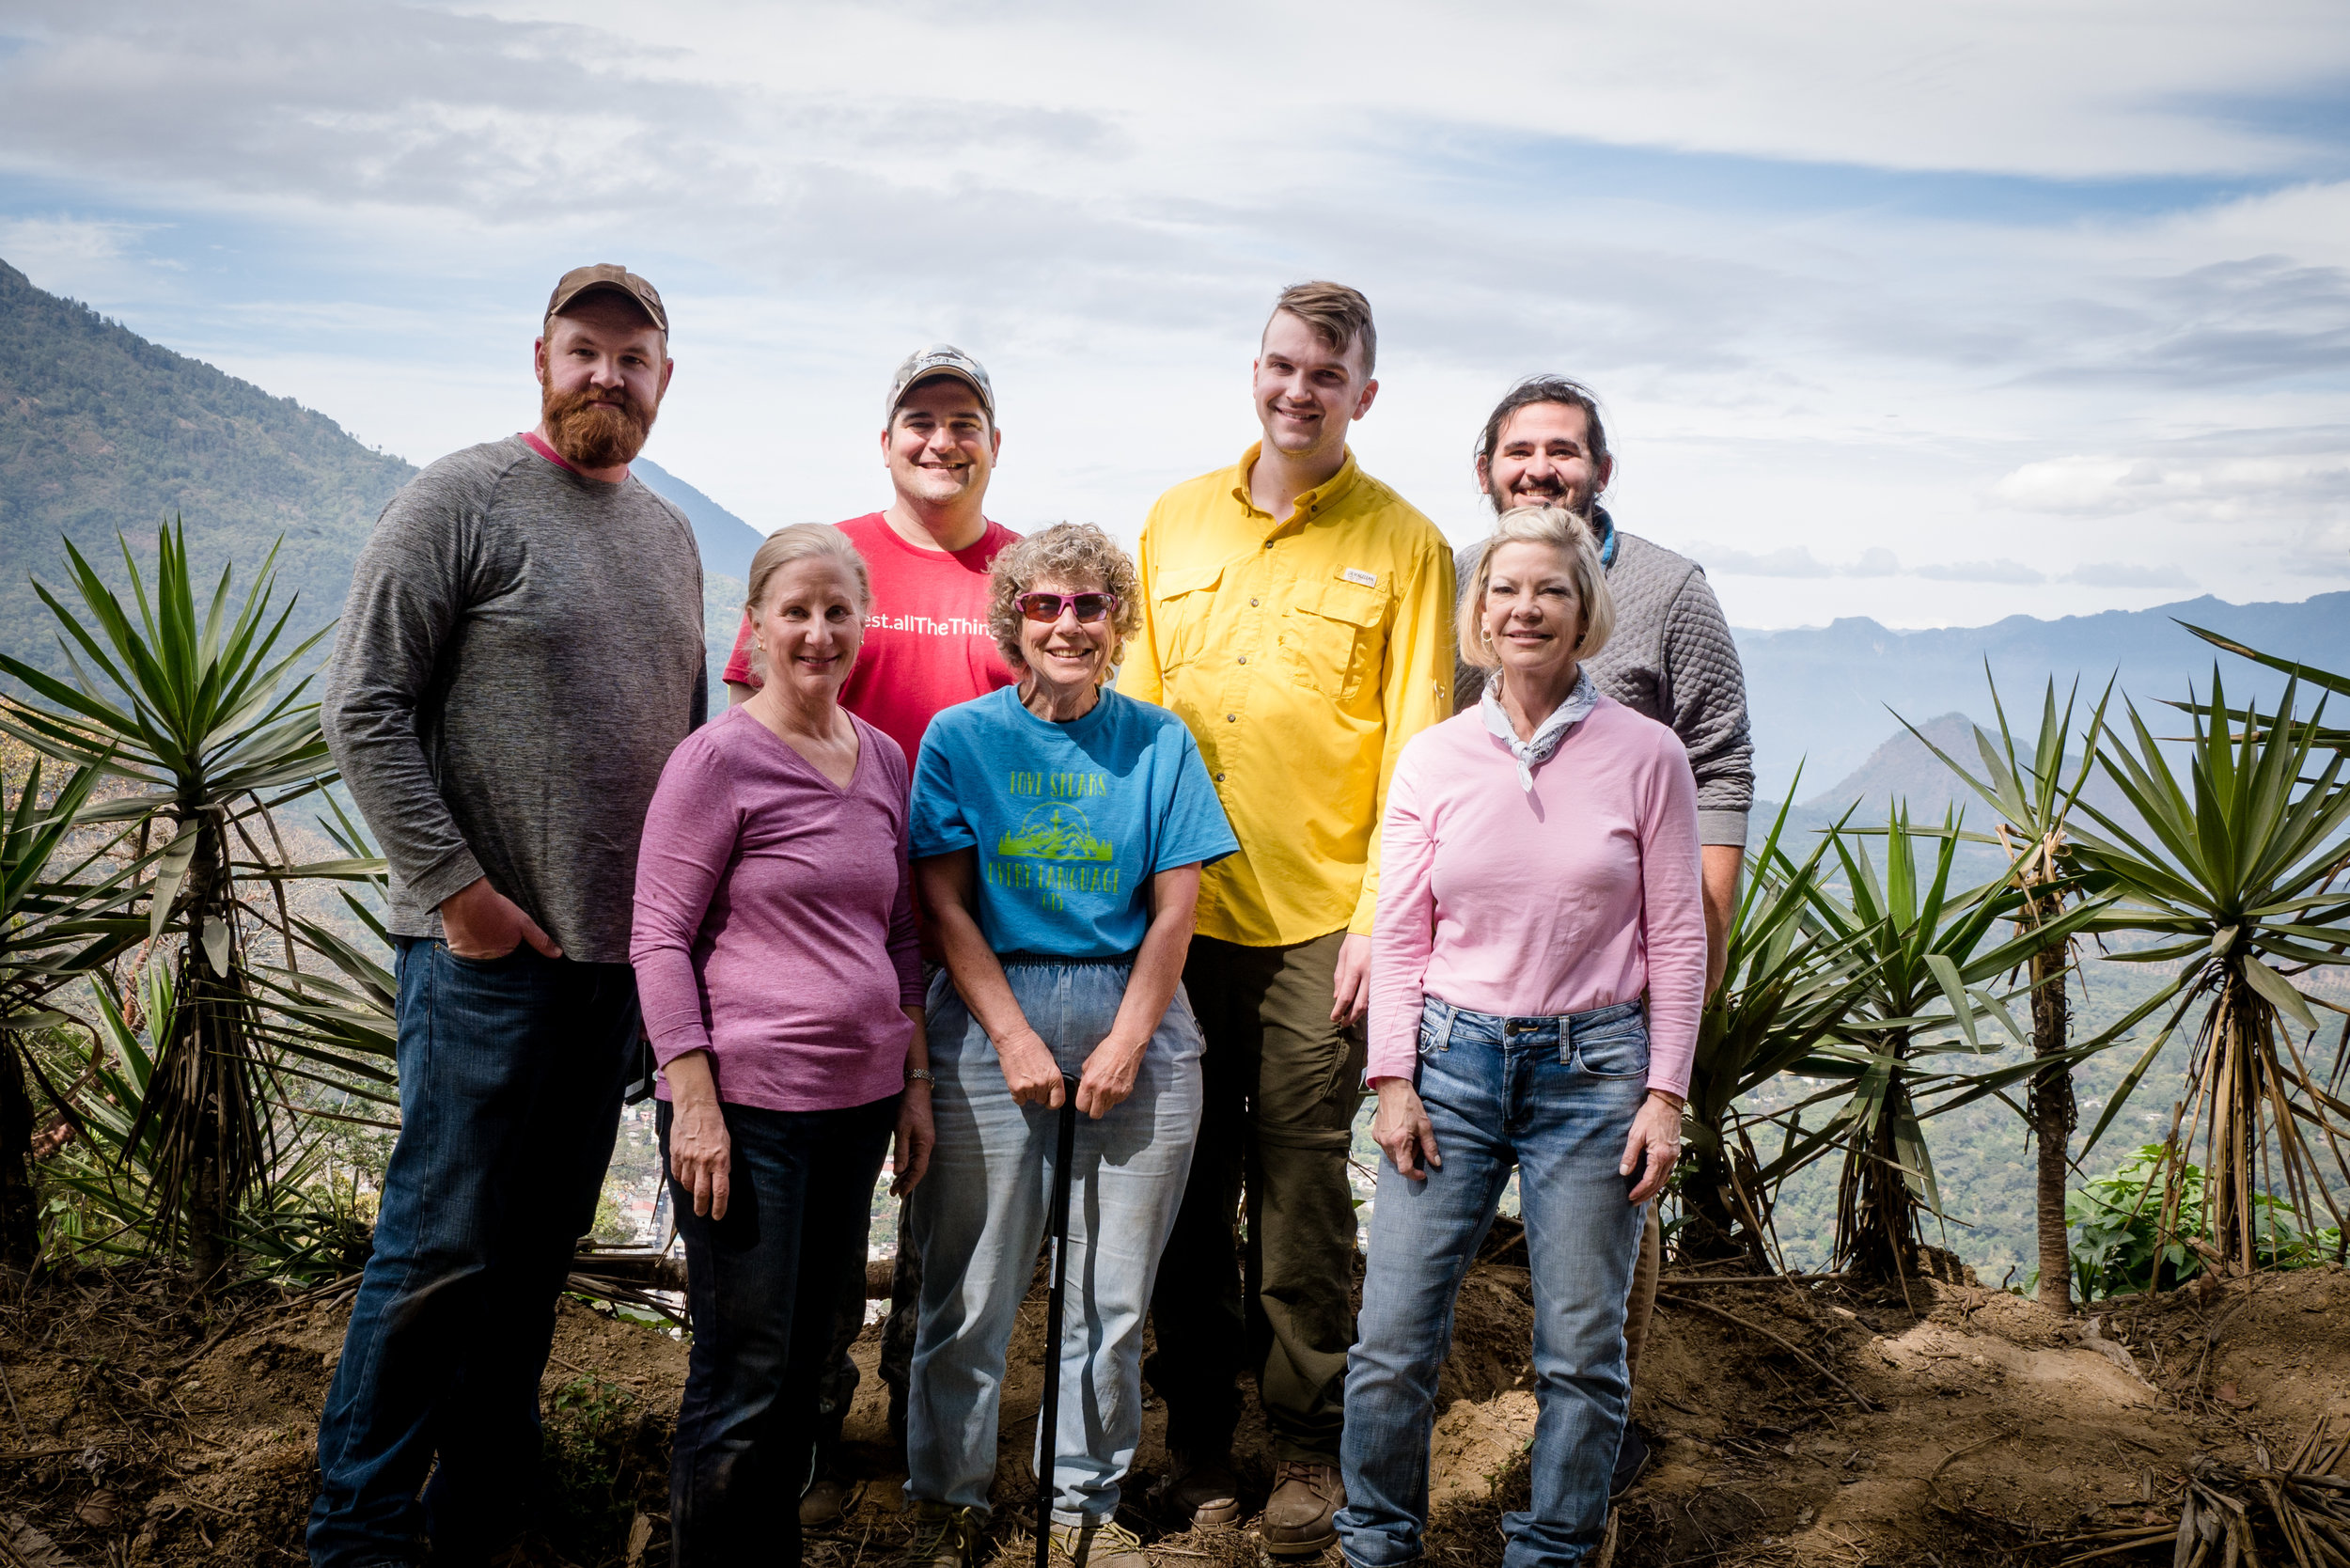 Guatemala Mission Trip Team Pictured with Missionary Teri Lattrell